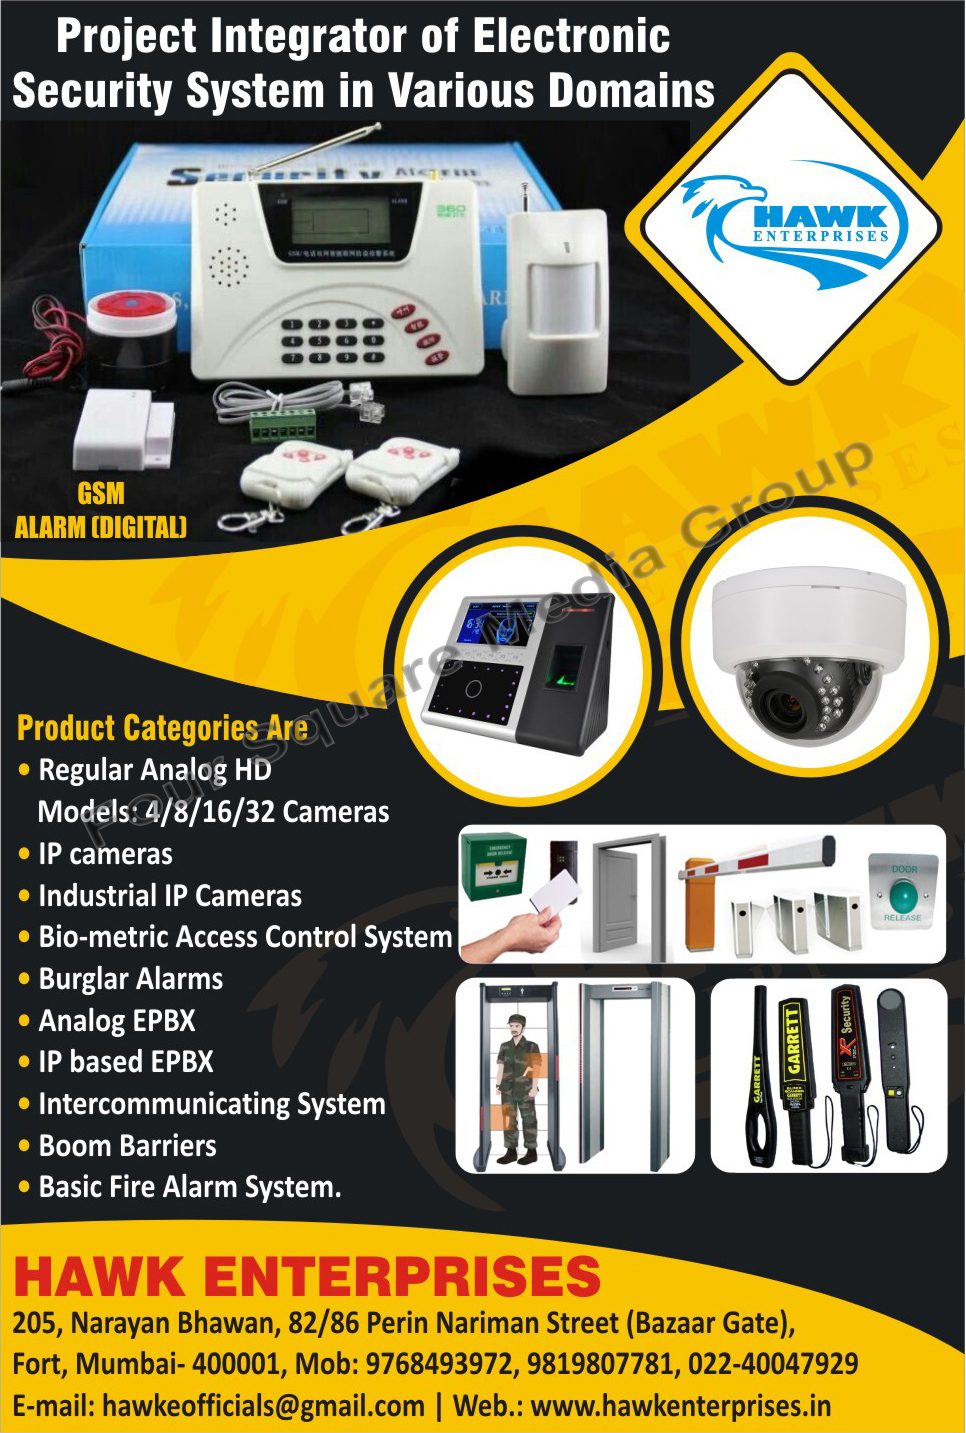 GSM Alarms, CCTV Cameras, CCTV, Analog Cameras, IP Cameras, Industrial IP Cameras, Biometric Access Control Systems, Burglar Alarms, Analog EPBX, Intercommunicating Systems, Boom Barriers, Fire Alarm Systems